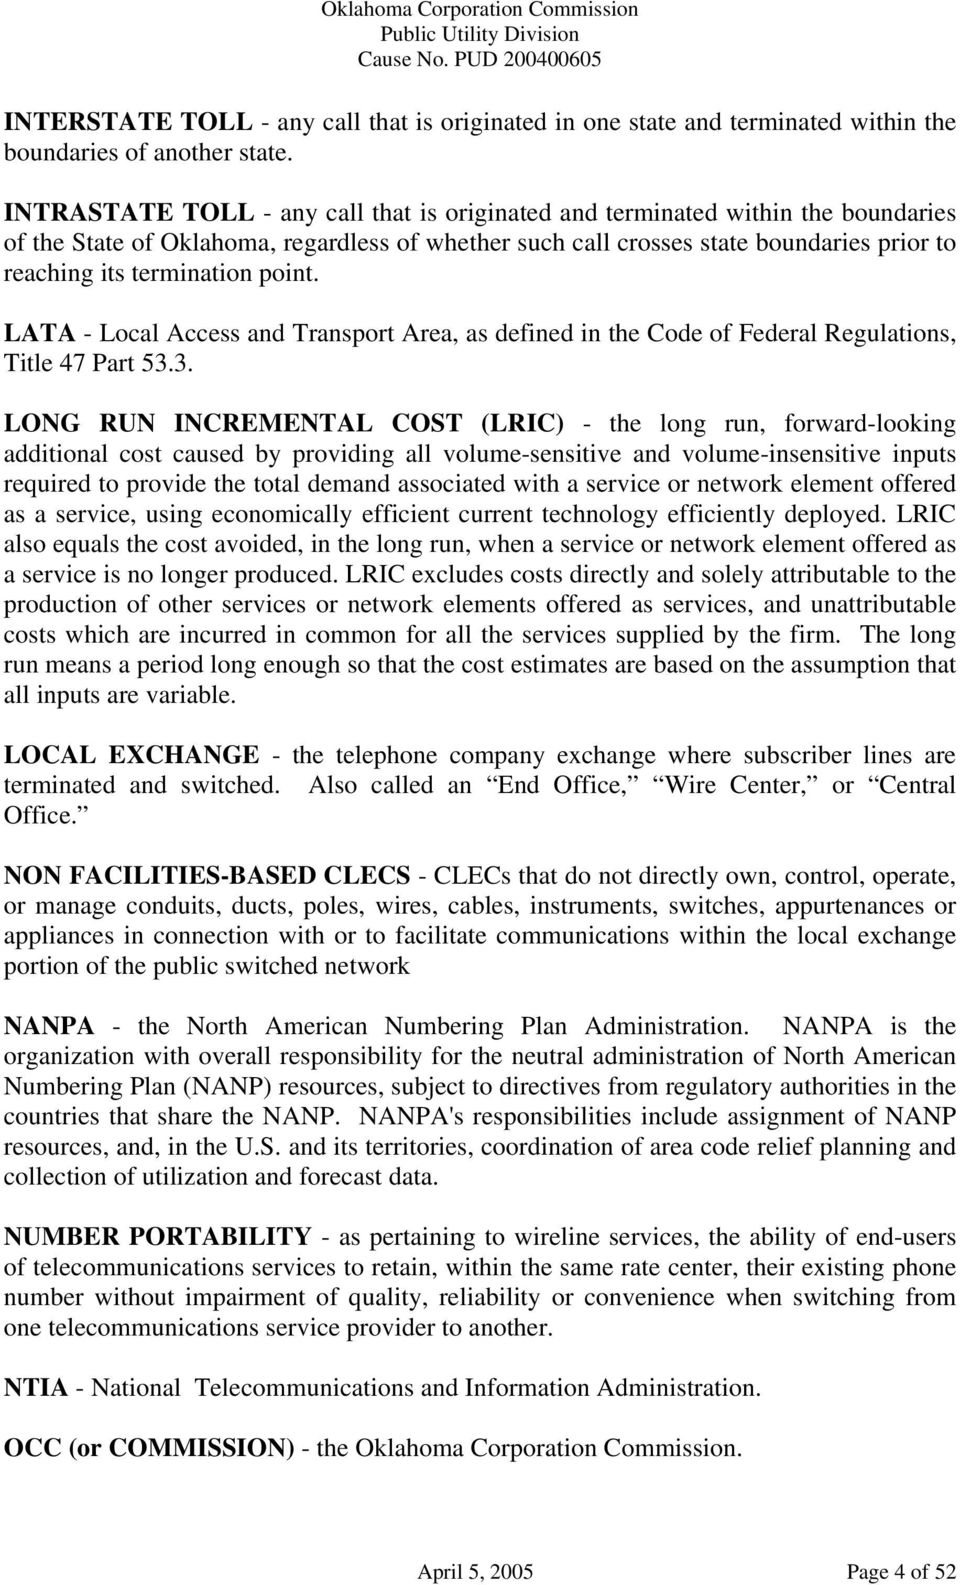 point. LATA - Local Access and Transport Area, as defined in the Code of Federal Regulations, Title 47 Part 53.